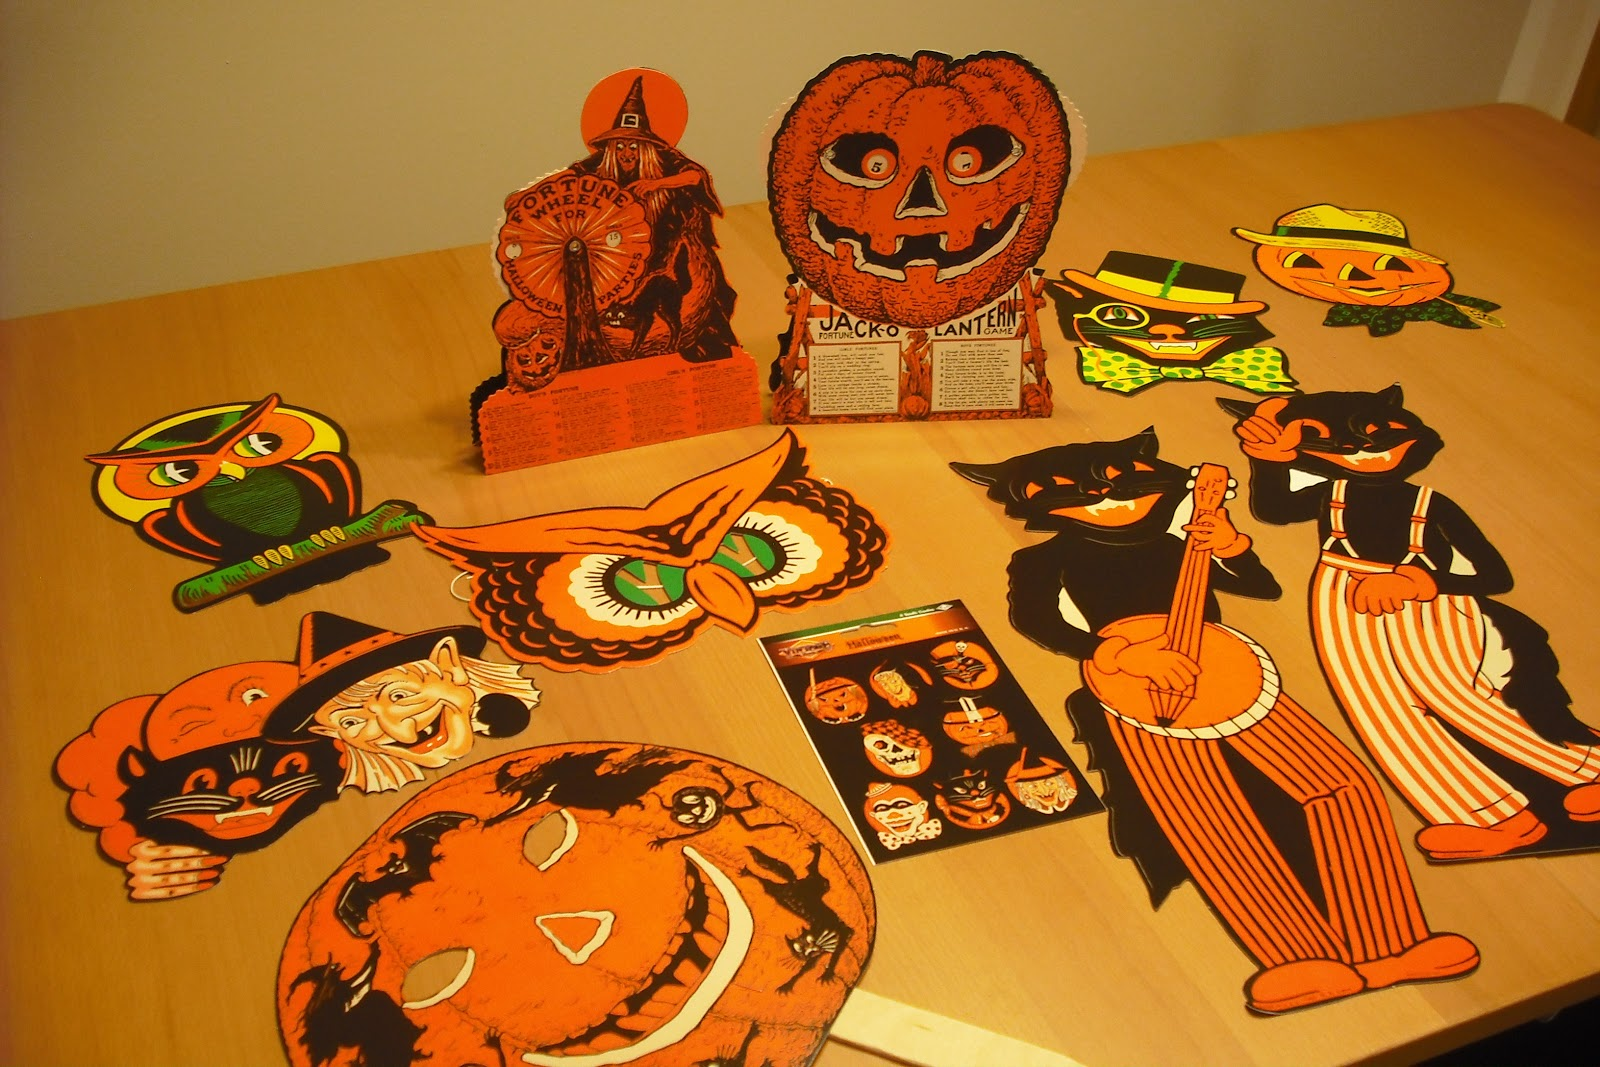 Vintage halloween paper decorations - Vintage Halloween Decorations Are A Hard Find Besides Dennison Paper Goods A Company Called Beistle Has Been Making Decorations For Years